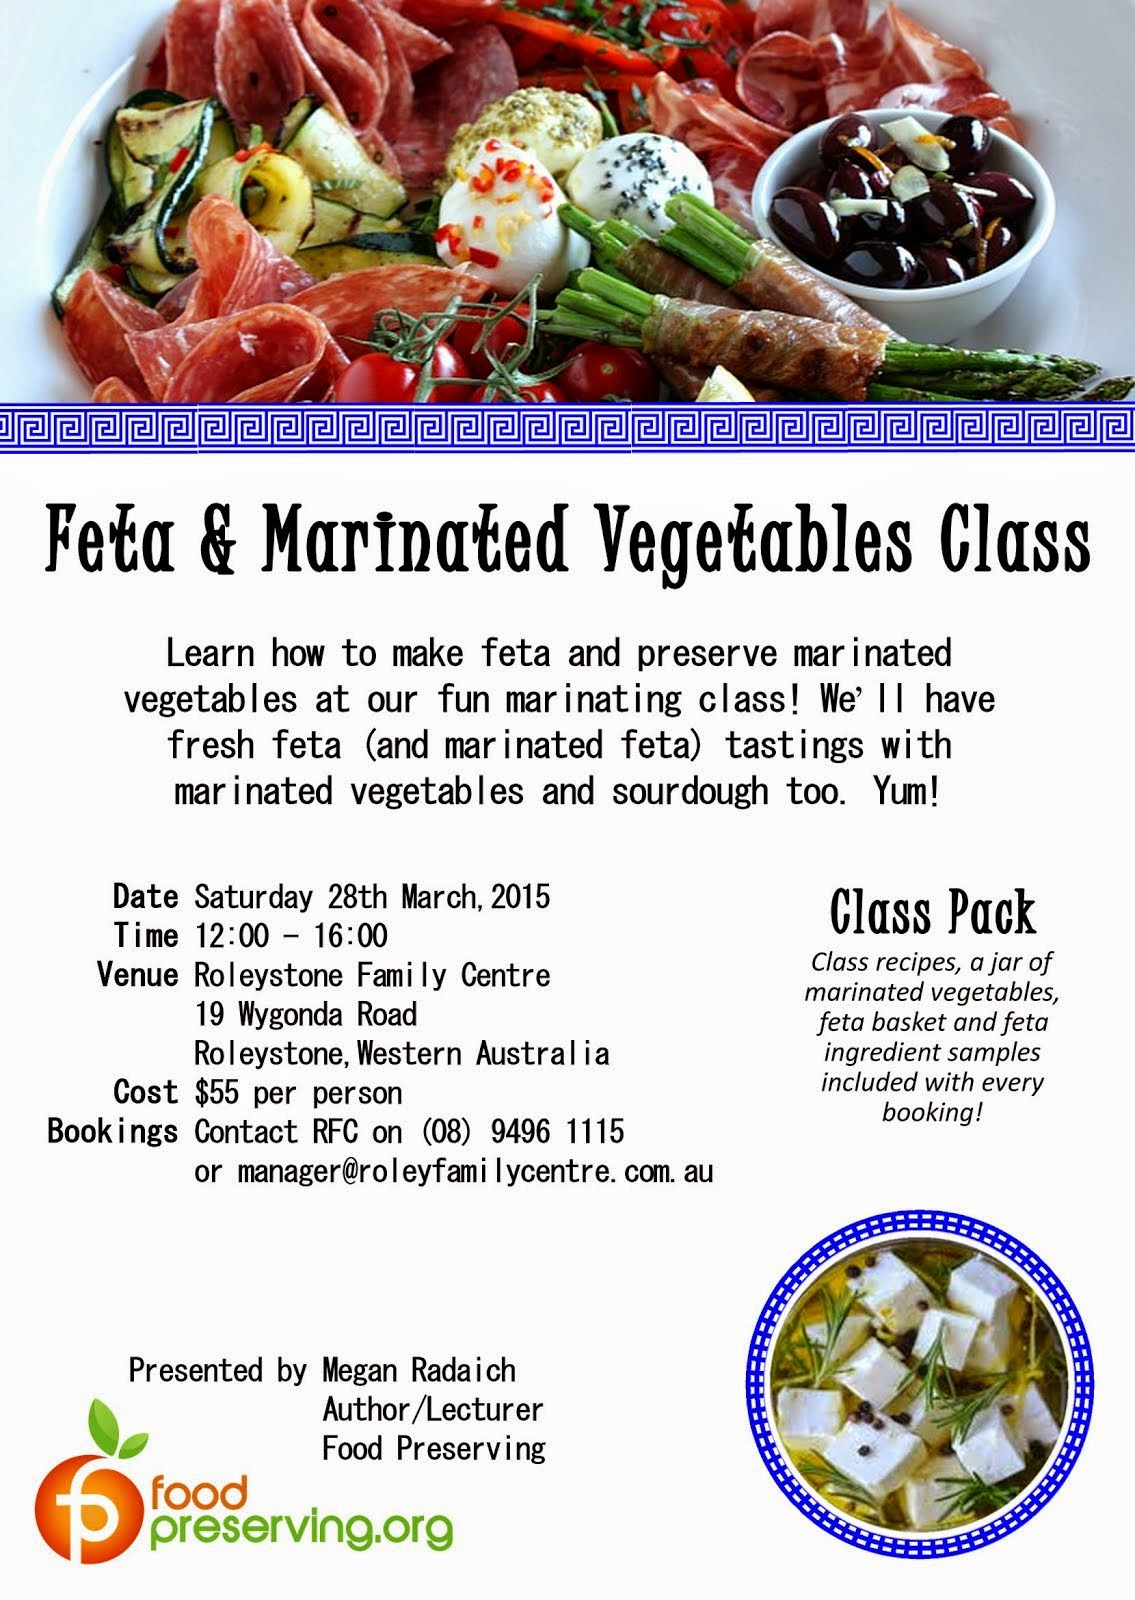 Mar 28 - Feta & Marinated Vegetables Class